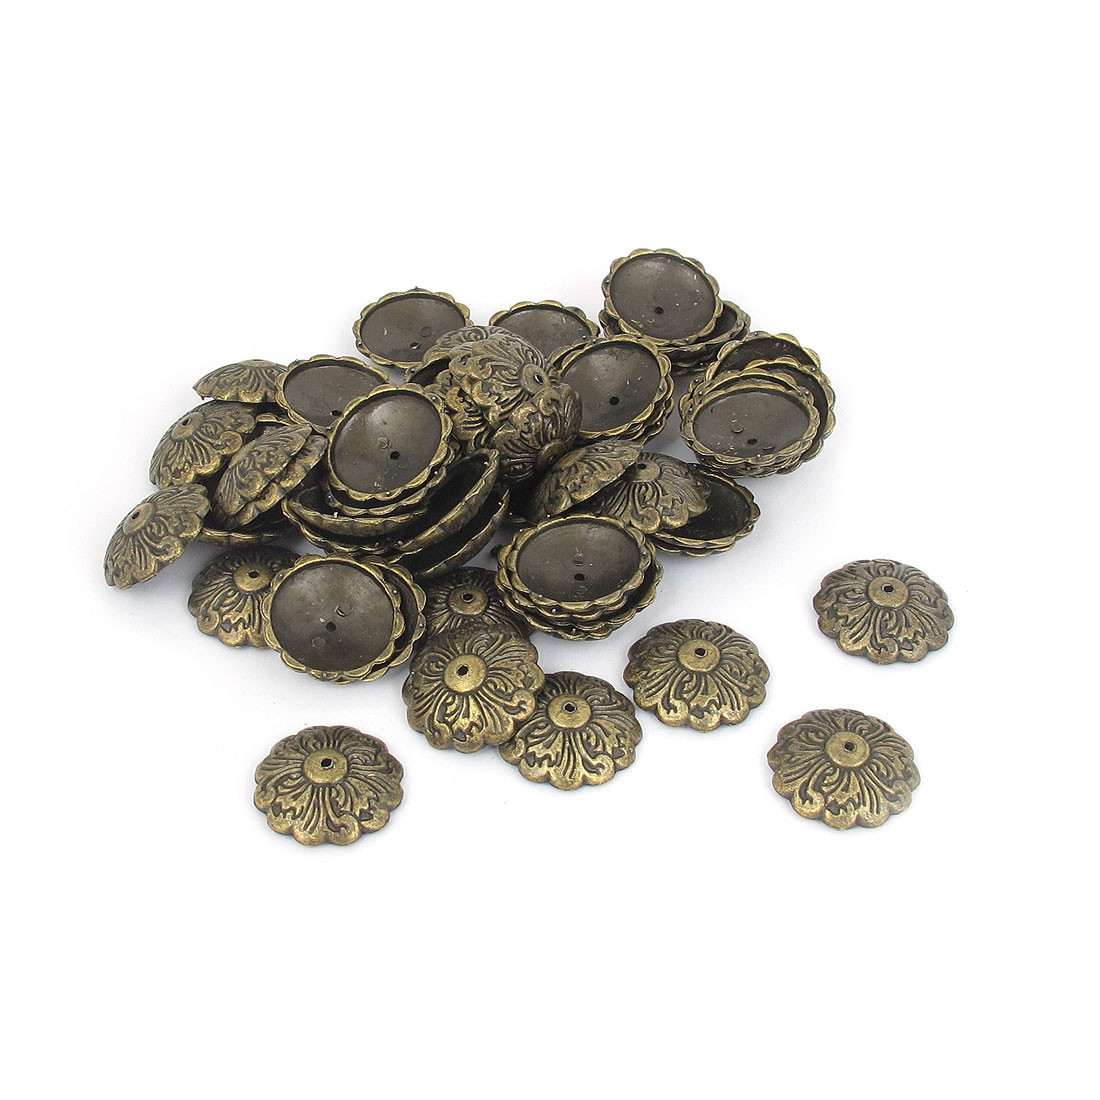 Metal Antique Style Flower Carved Thumb Tacks Bronze Tone 22mm Diameter 60pcs